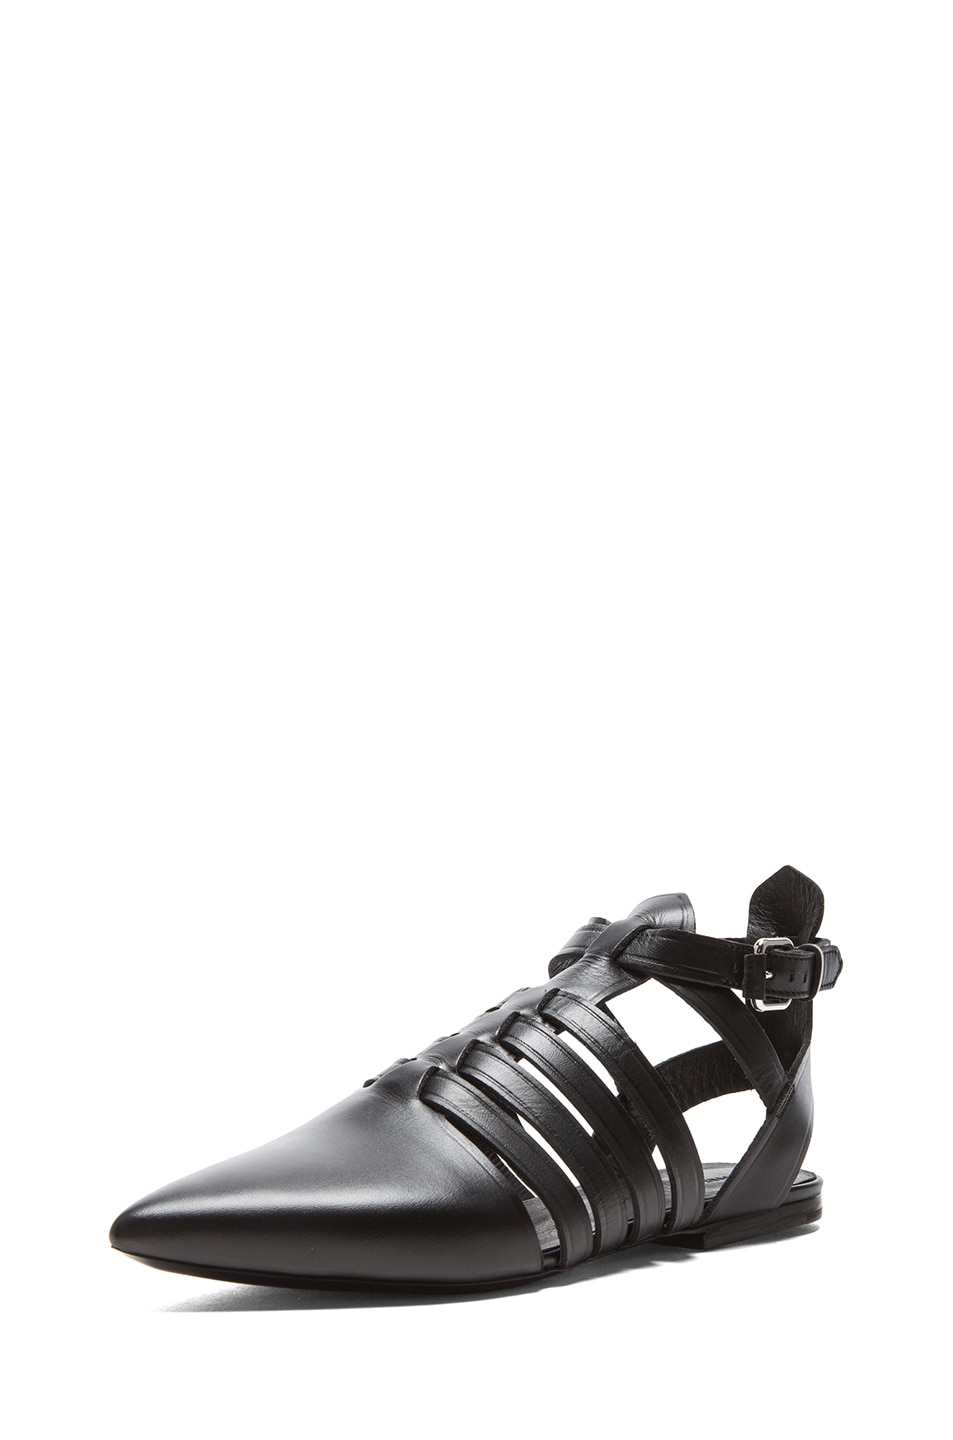 Image 2 of Proenza Schouler Pointed Toe Leather Flats in Black